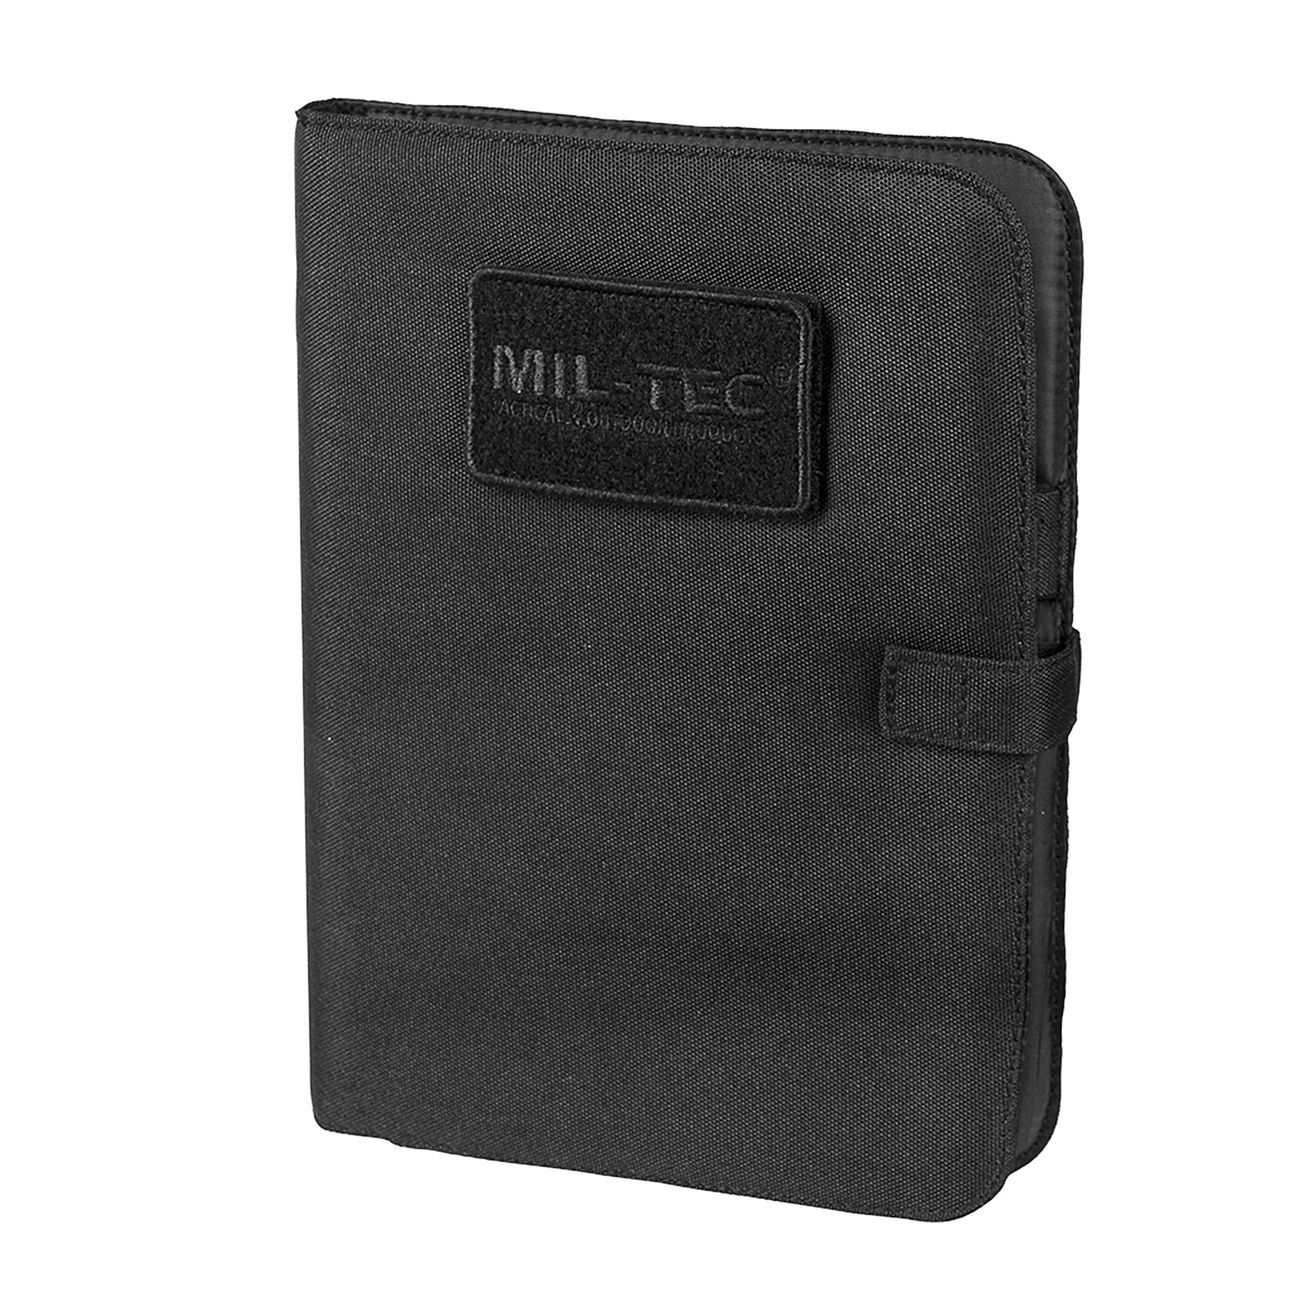 Mil-Tec Tactical Notizbuch Medium schwarz 0